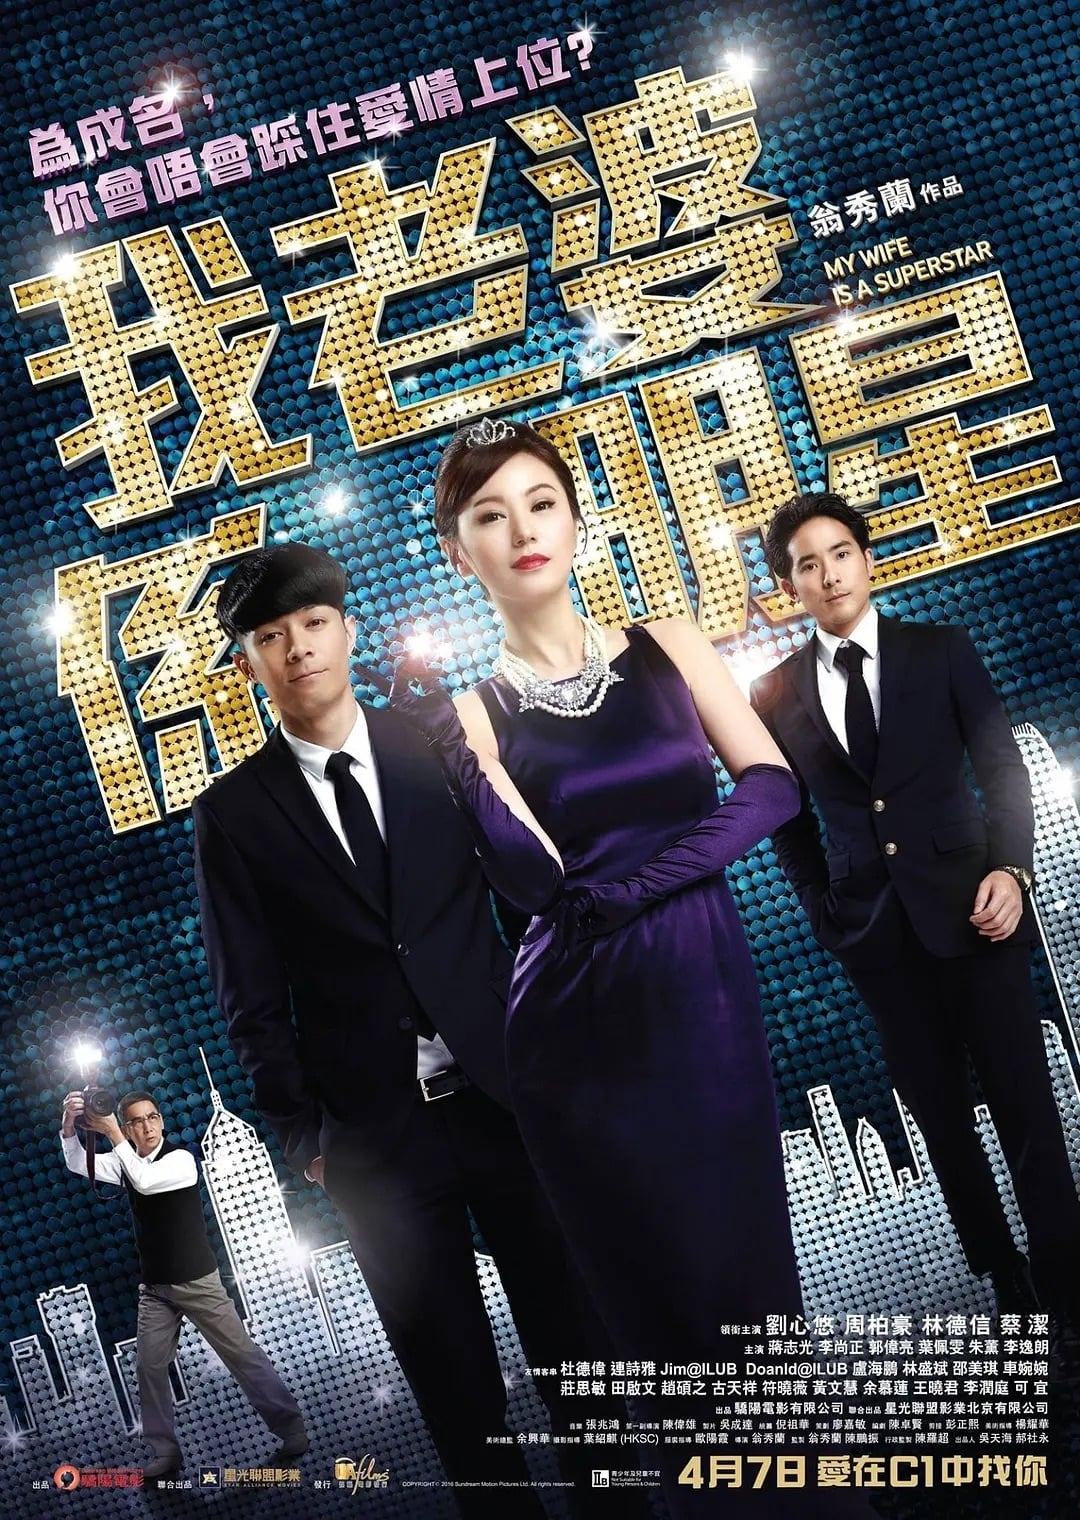 My Wife Is a Superstar (2016)